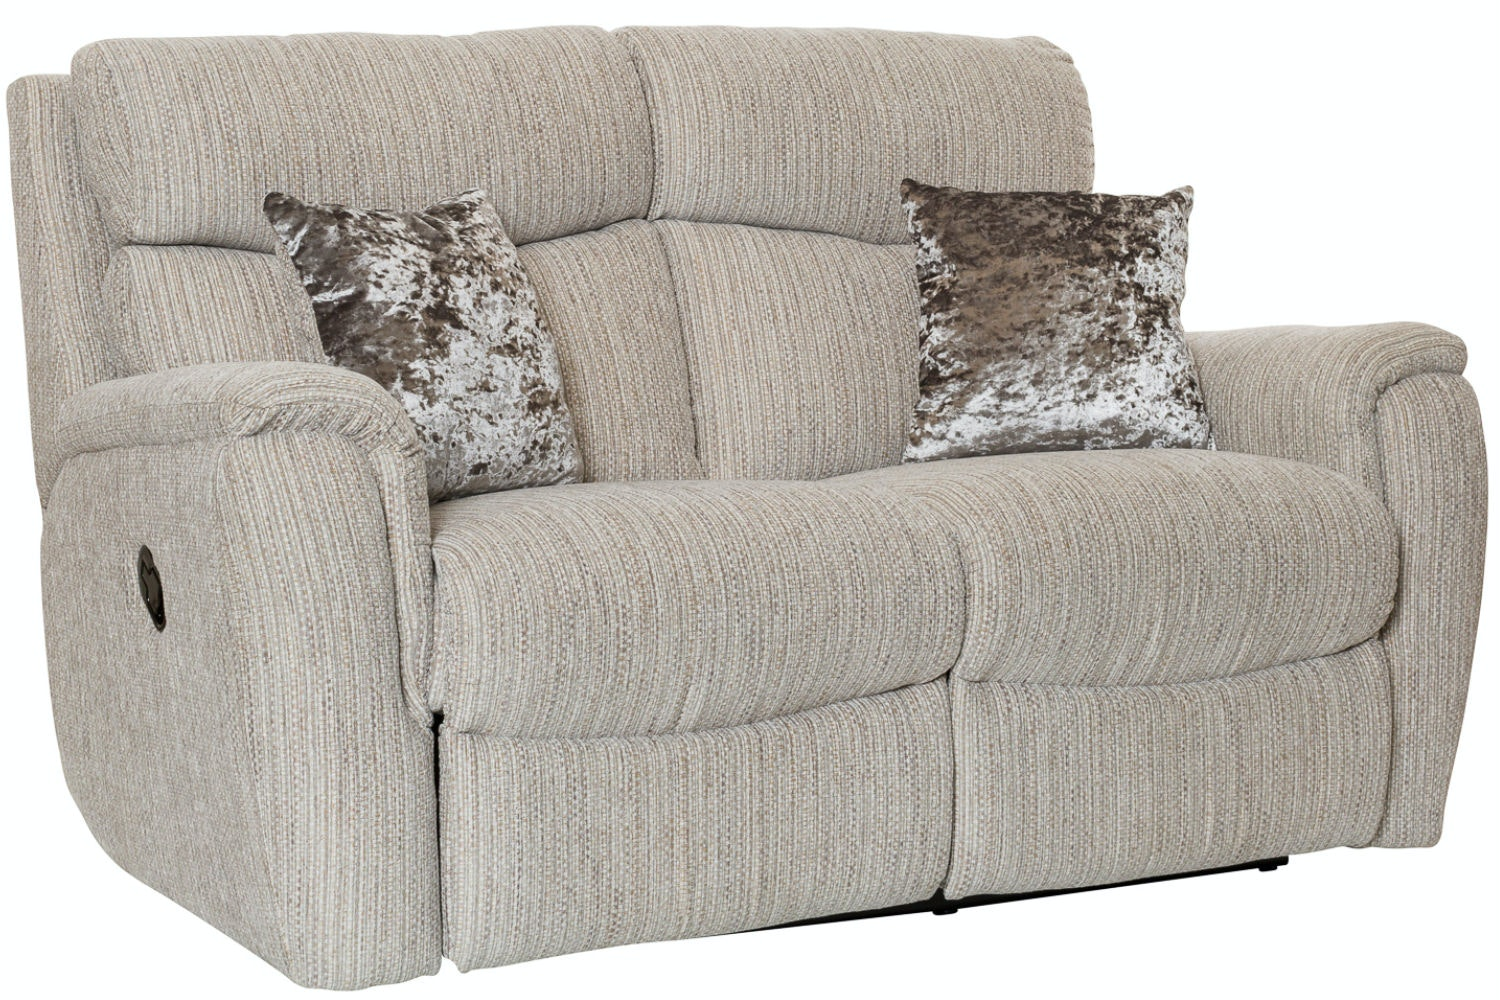 Denver 2 Seater Recliner Sofa